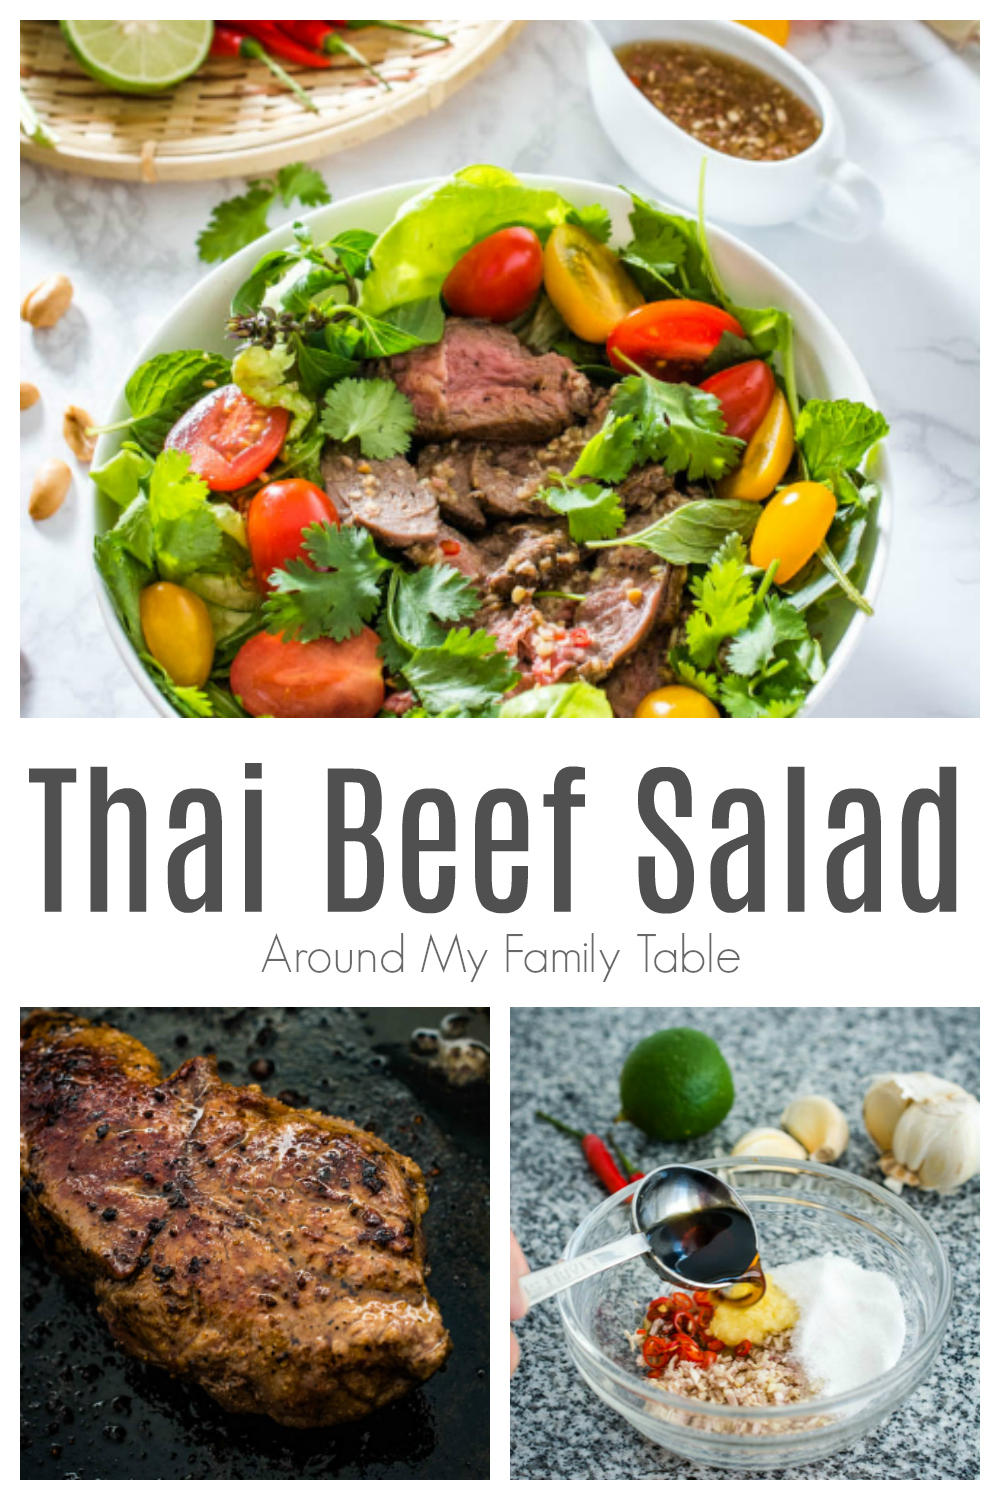 This Thai Beef Salad features thin slices of beef on fresh salad greens and herbs like mint, basil and cilantro, all tossed in a tangy and spicy Thai dressing then topped with chopped peanuts for some added crunch. via @slingmama